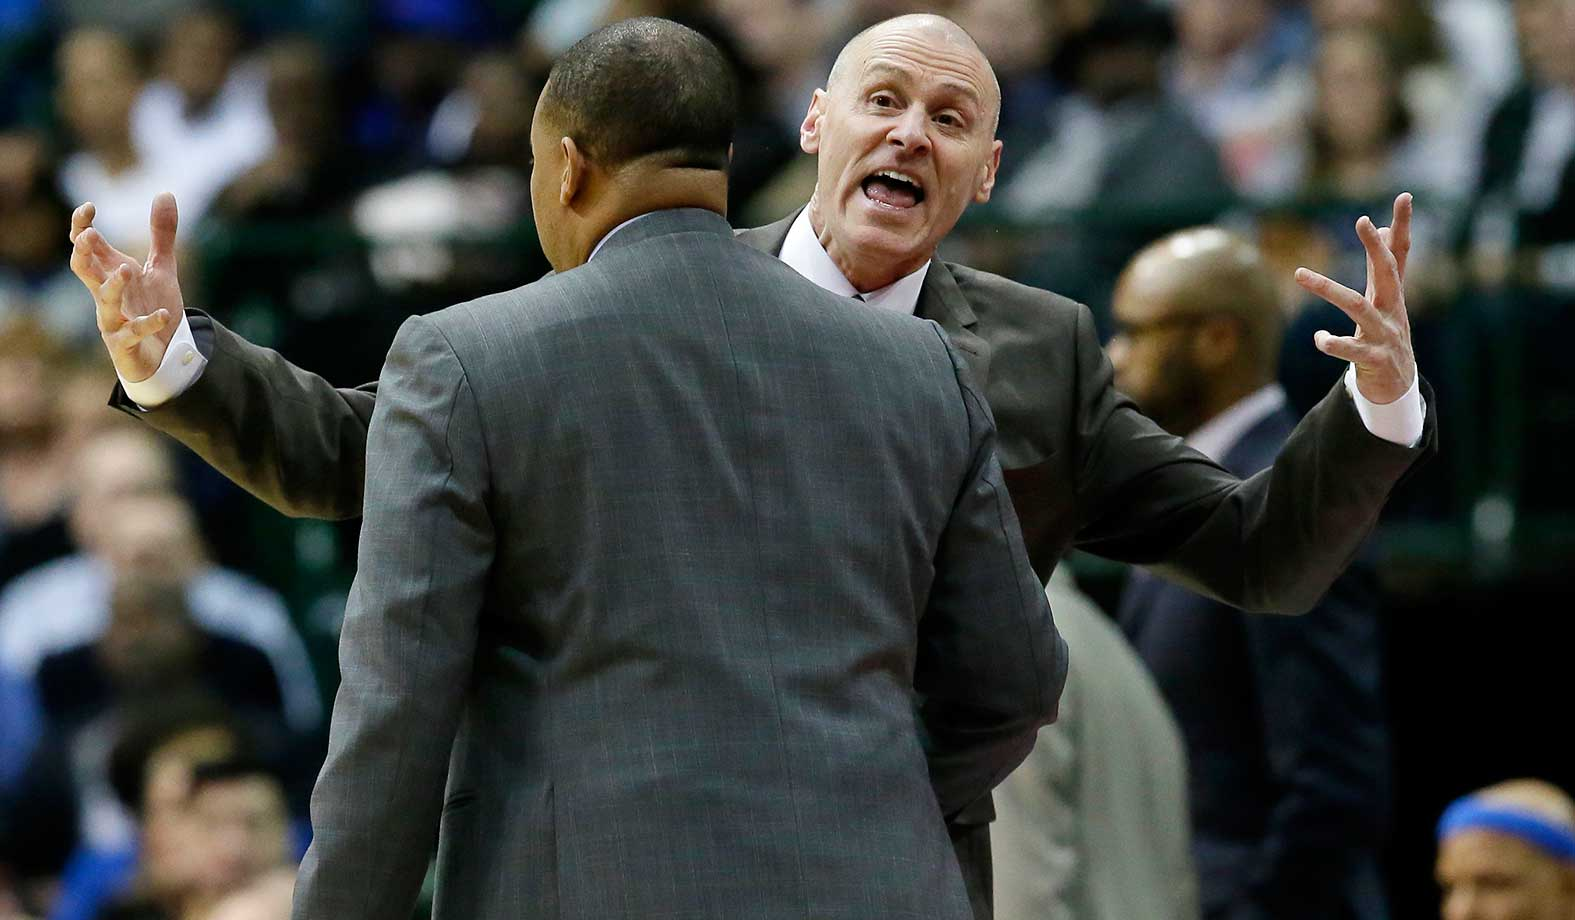 Dallas Mavericks head coach Rick Carlisle is held back after he was called for a technical foul during a game against the Miami Heat in Dallas. The Heat won 93-90.